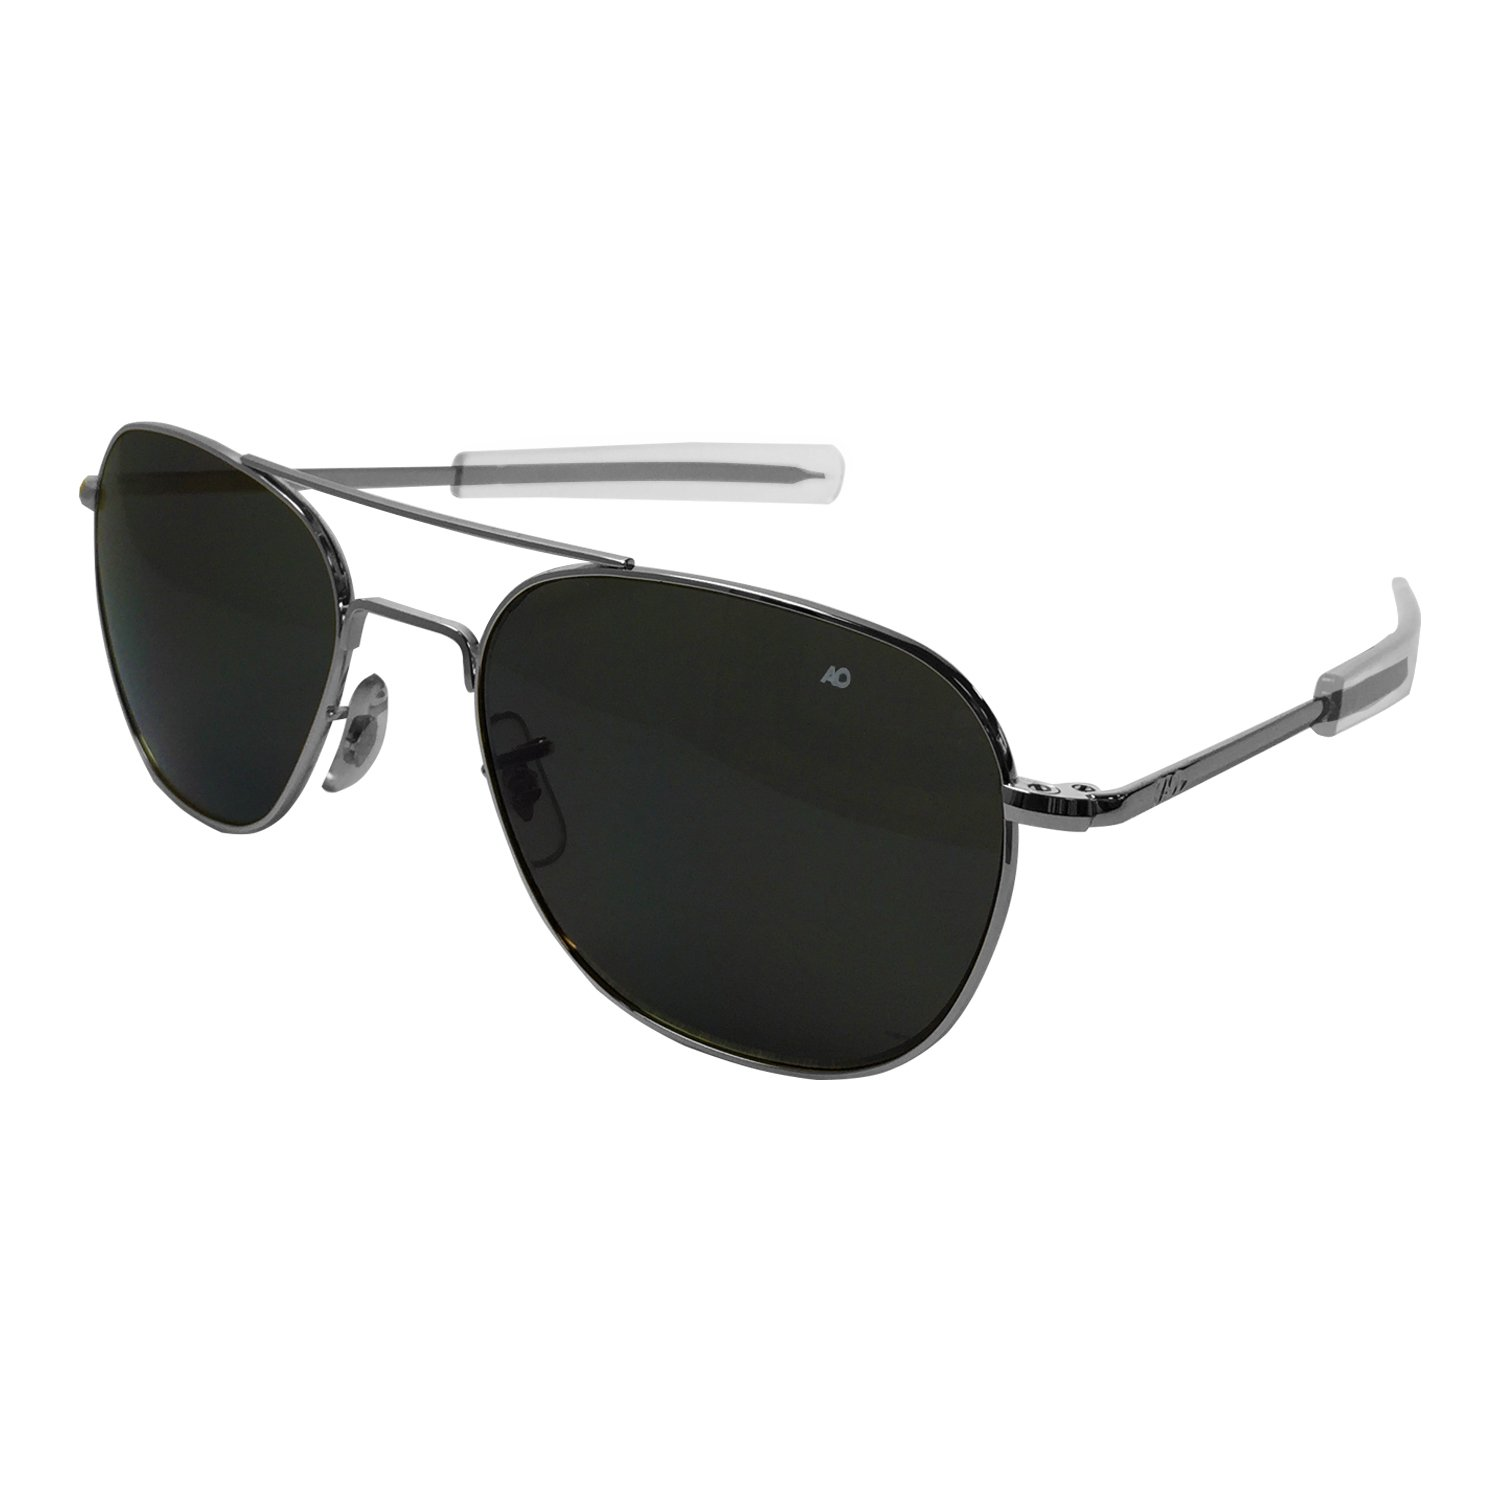 AO Eyewear American Optical - Original Pilot Aviator Sunglasses with Bayonet Temple and Silver Frame, Color Correct Grey Polycarbon​ate Lens